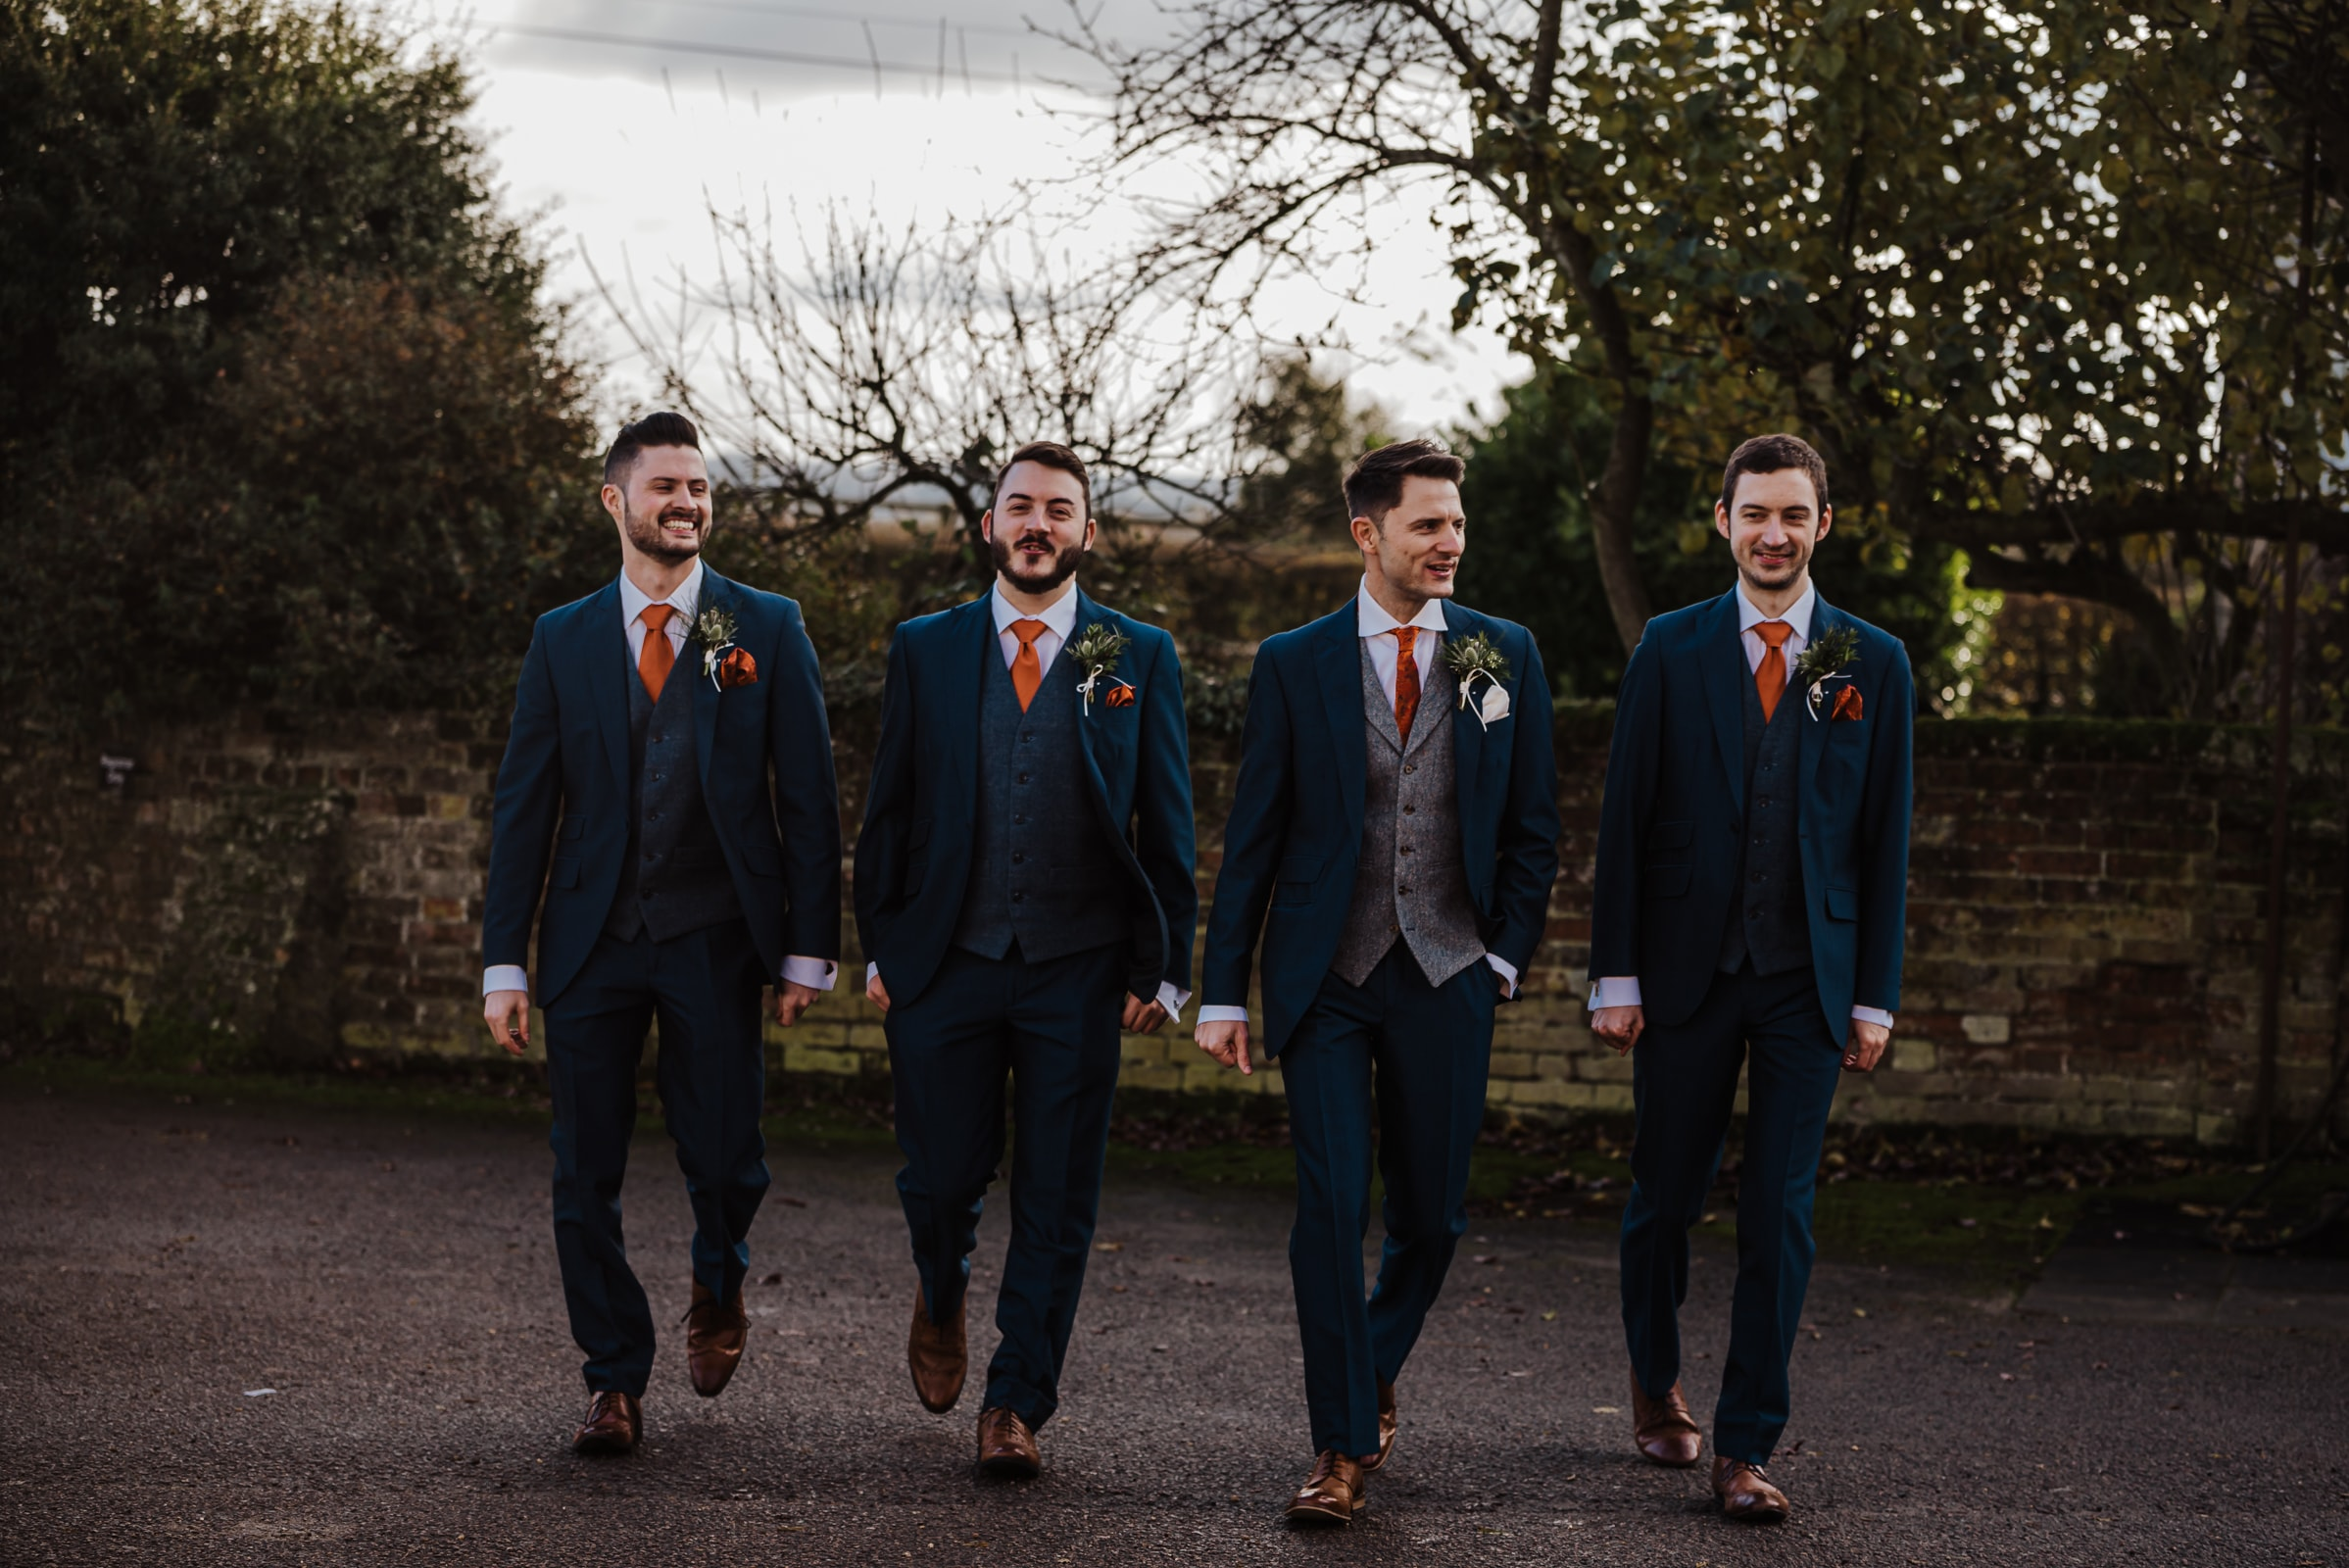 Wedding ceremony groom and the groomsmen in blue suits Roshni photography The Milling Barn, Bluntswood Hall, Throcking wedding photographer